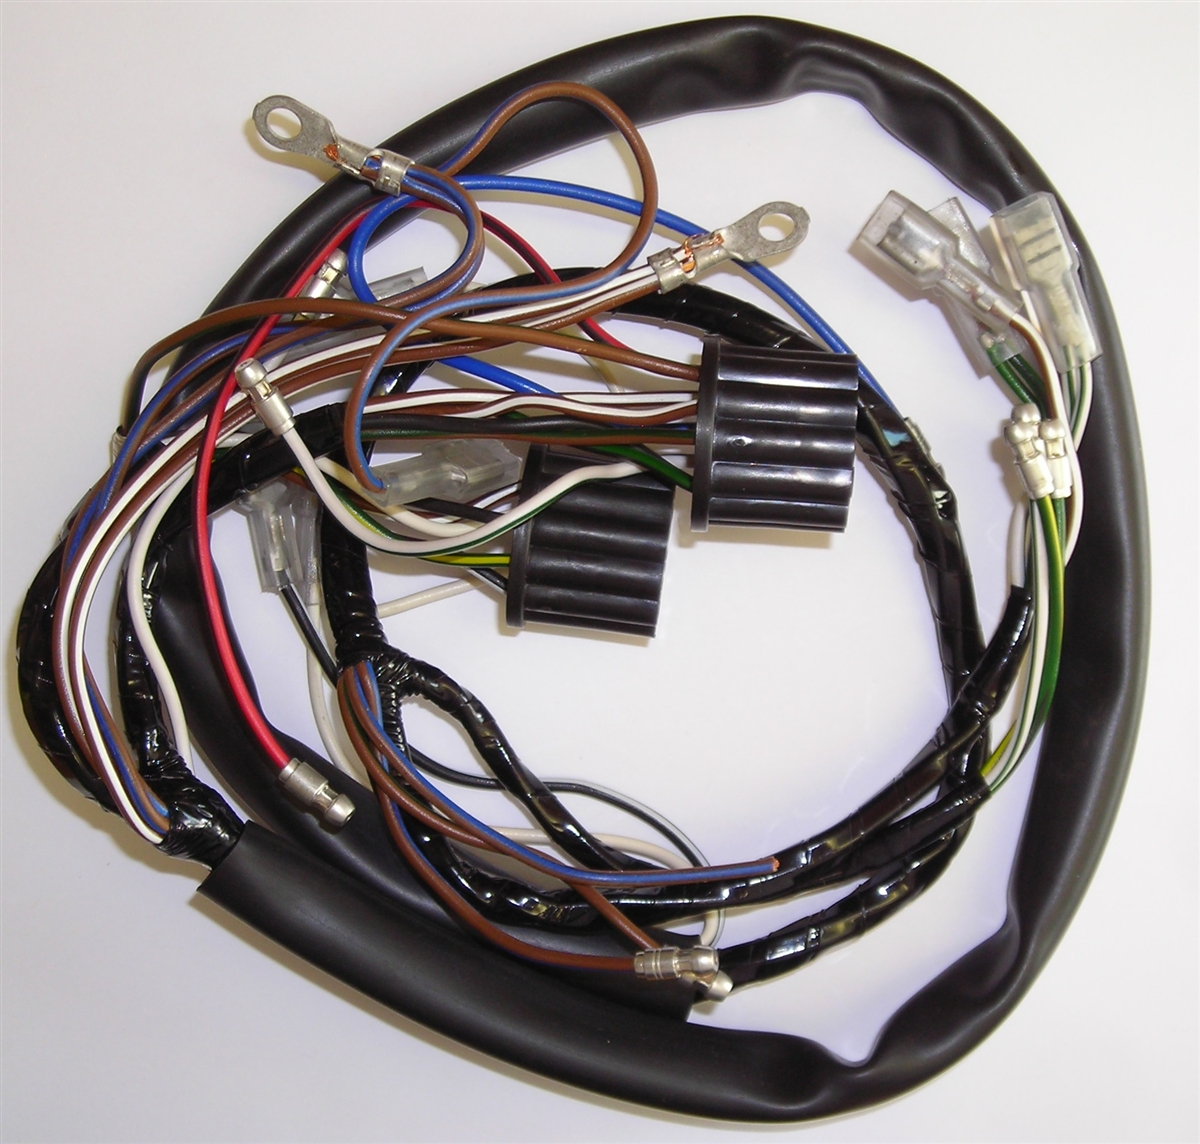 triumph motorcycle wiring harness rh britishwiring com motorcycle wiring harness tape motorcycle wiring harness parts